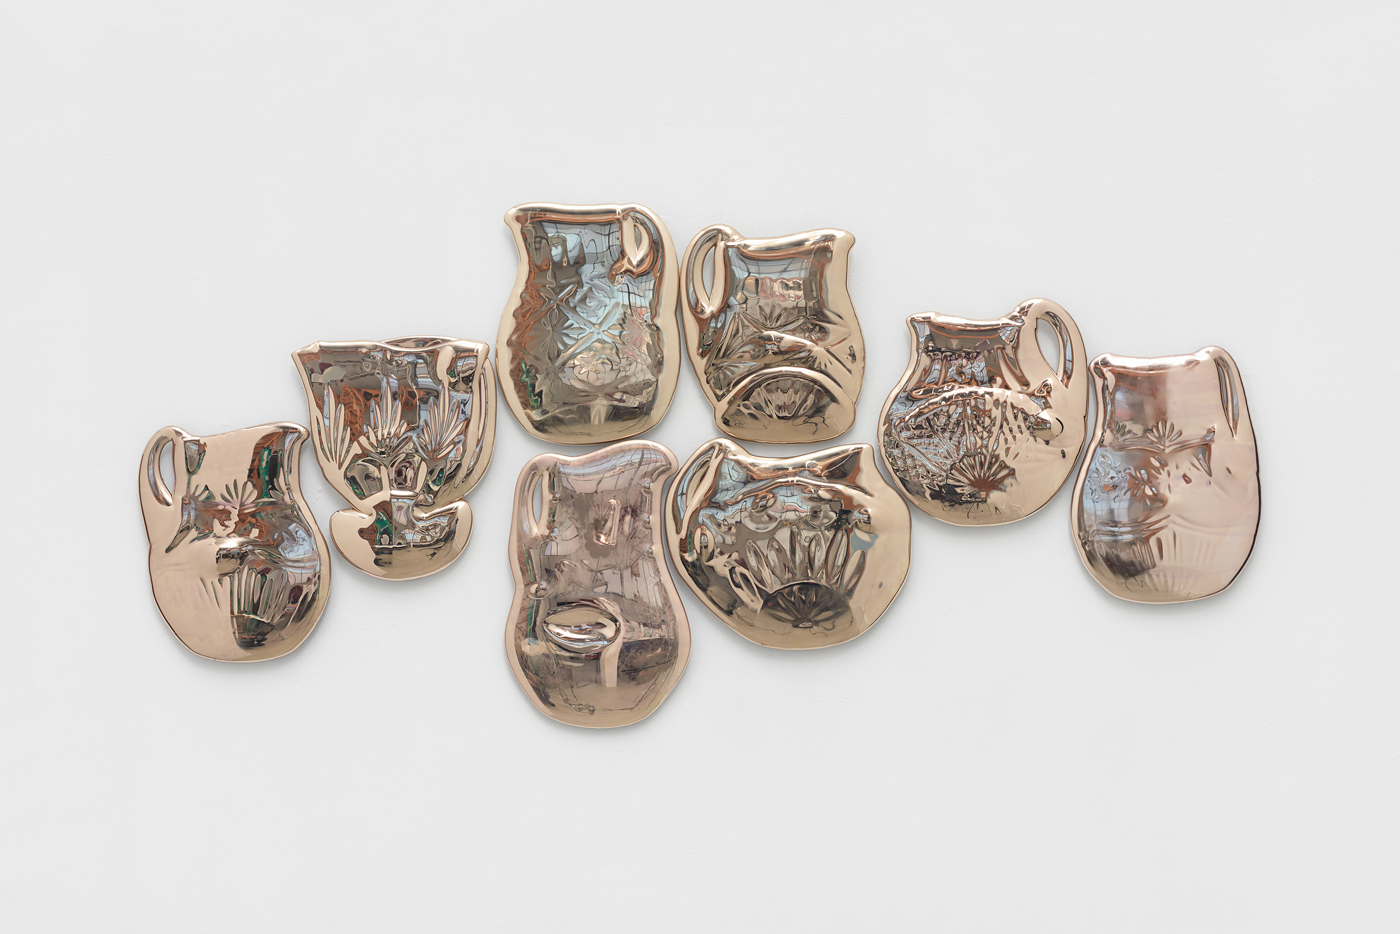 Amassment,  8 melted lead crystal pitchers coated with silver nitrate. 2017. Photo credit: John Janca